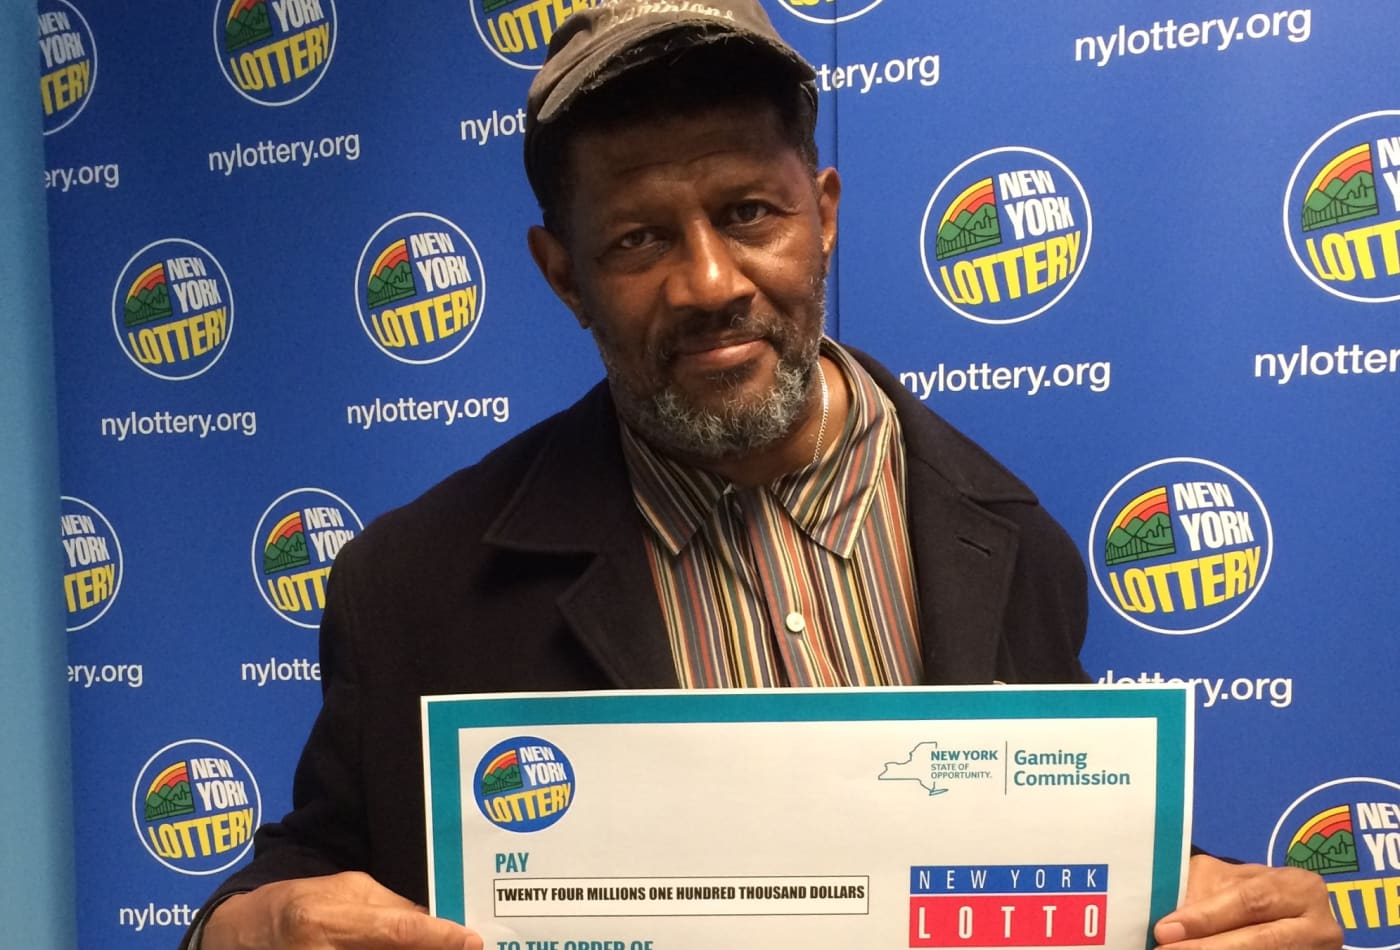 Grandfather finds a $24 million lottery ticket in an old shirt